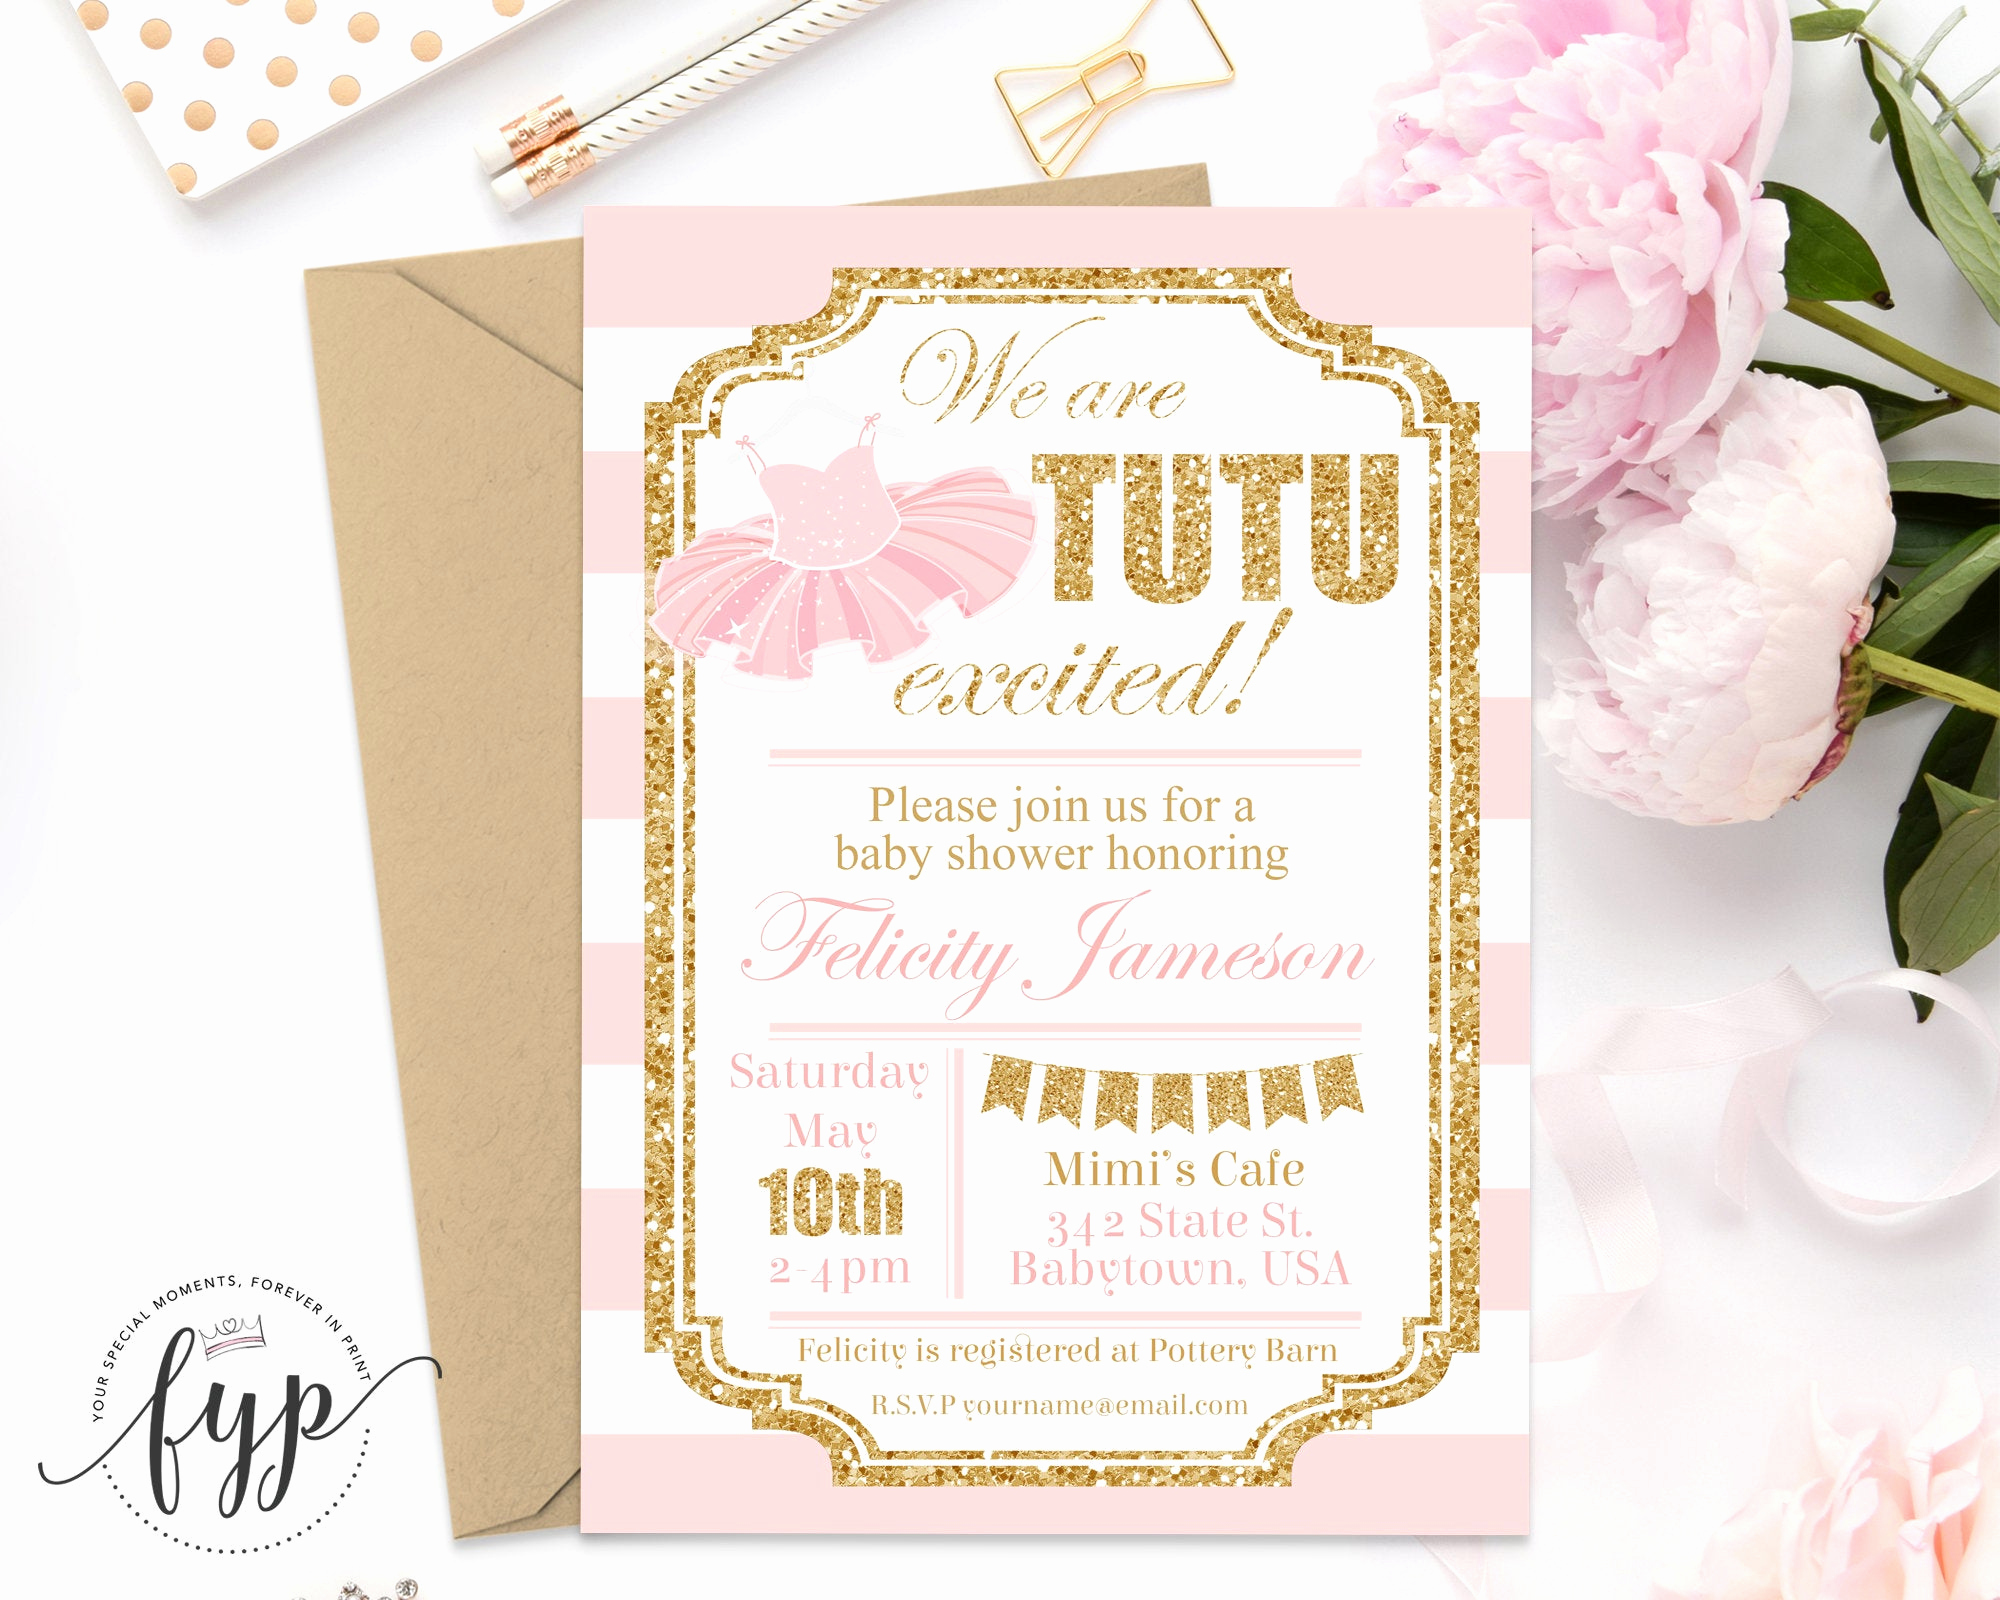 Tutu Baby Shower Invitation Unique Tutu Baby Shower Invitations Girls Baby Shower Invitations